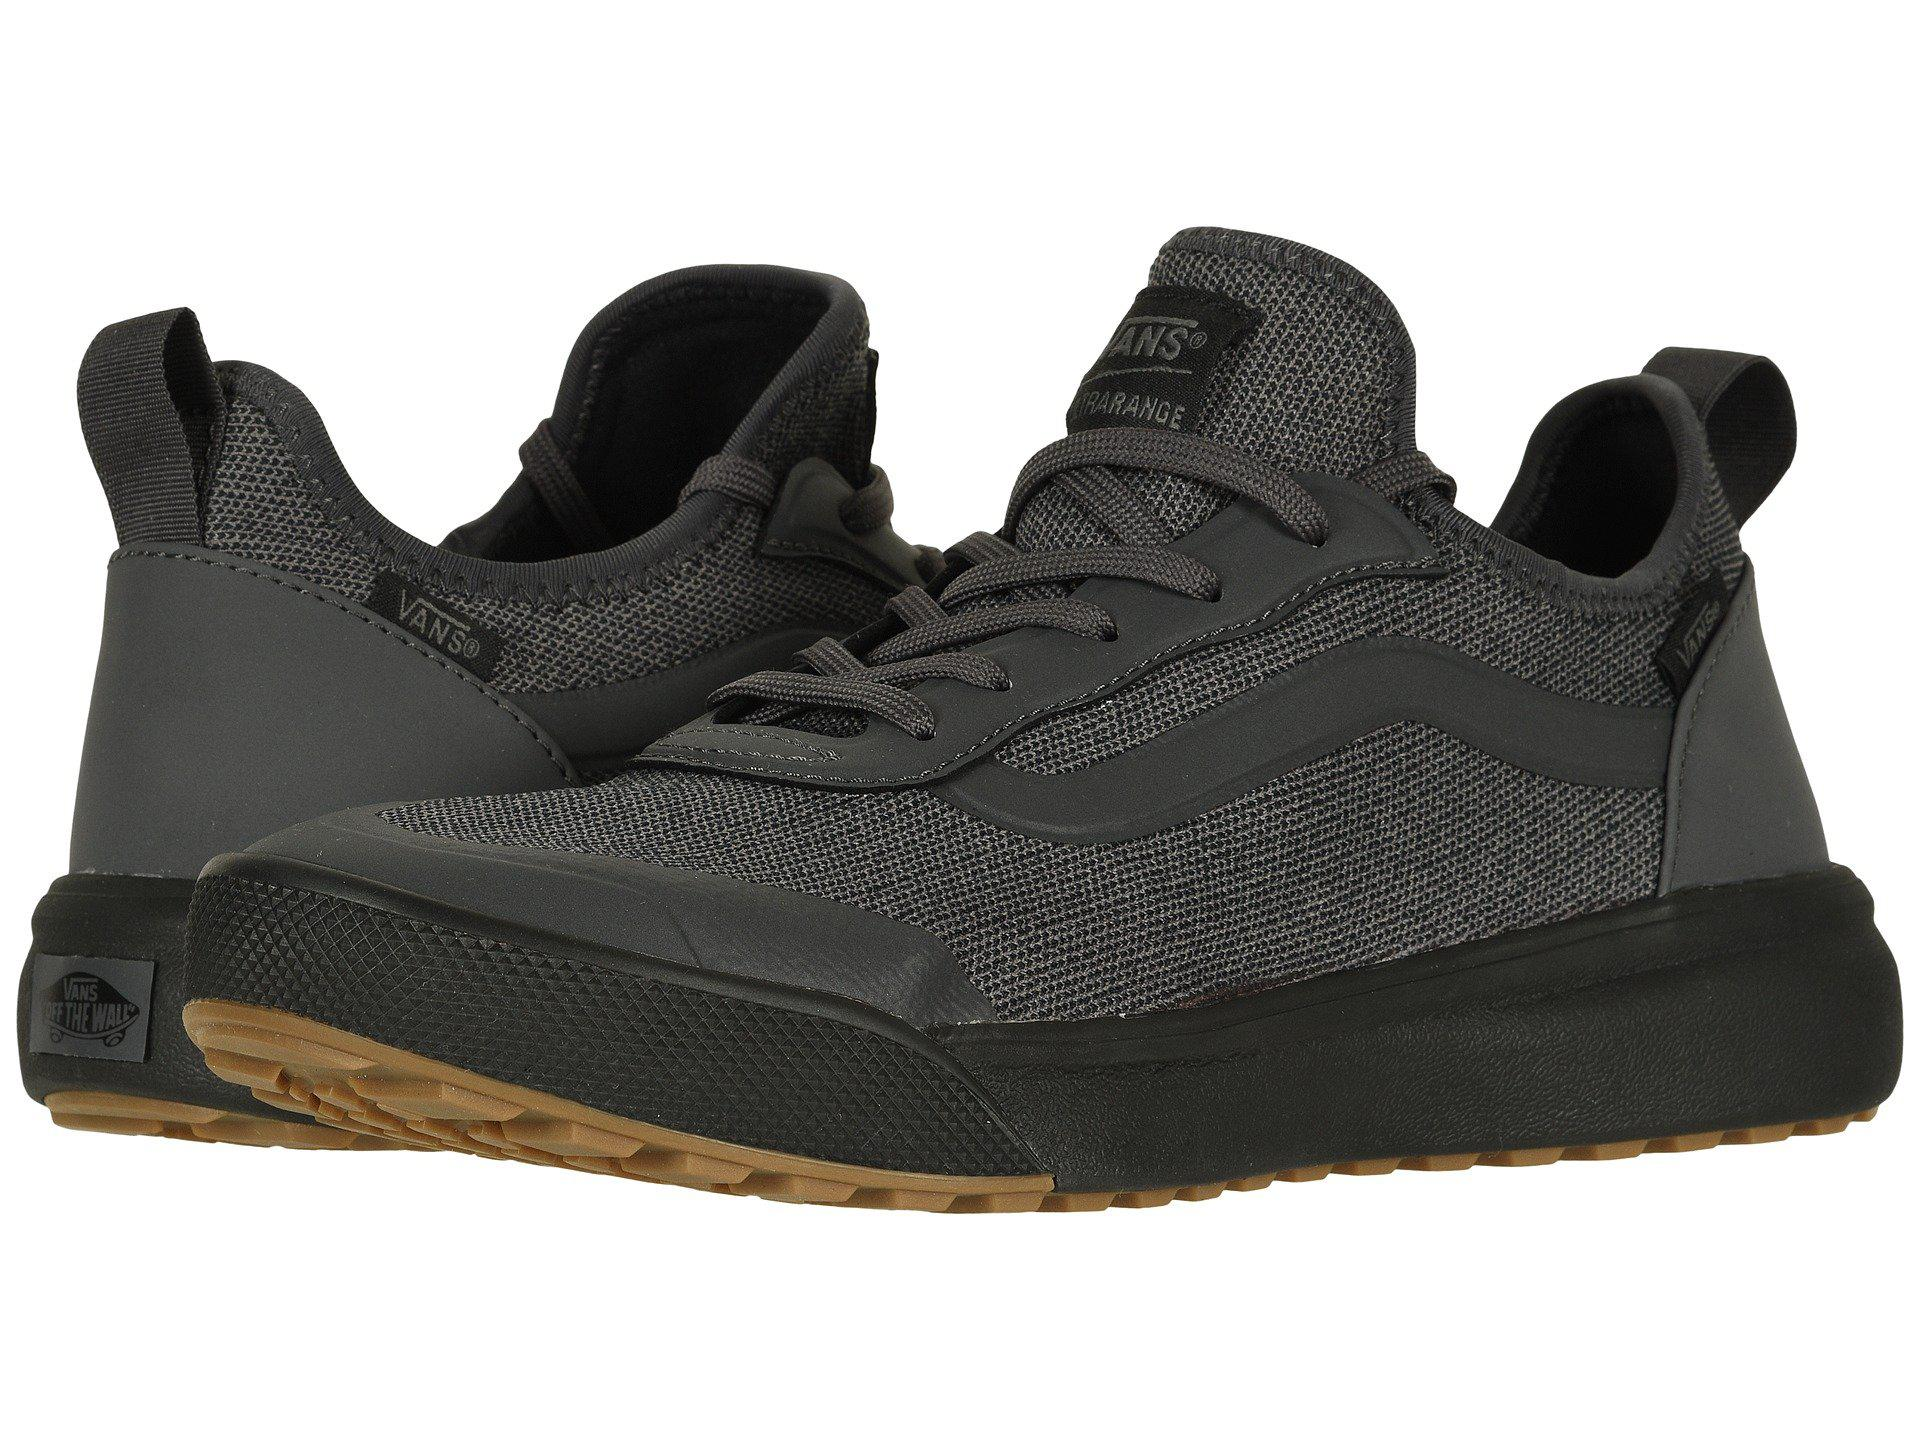 Lyst - Vans Ultrarange Ac ((reptile) Covert Green black) Skate Shoes ... 4cdbbcfc4